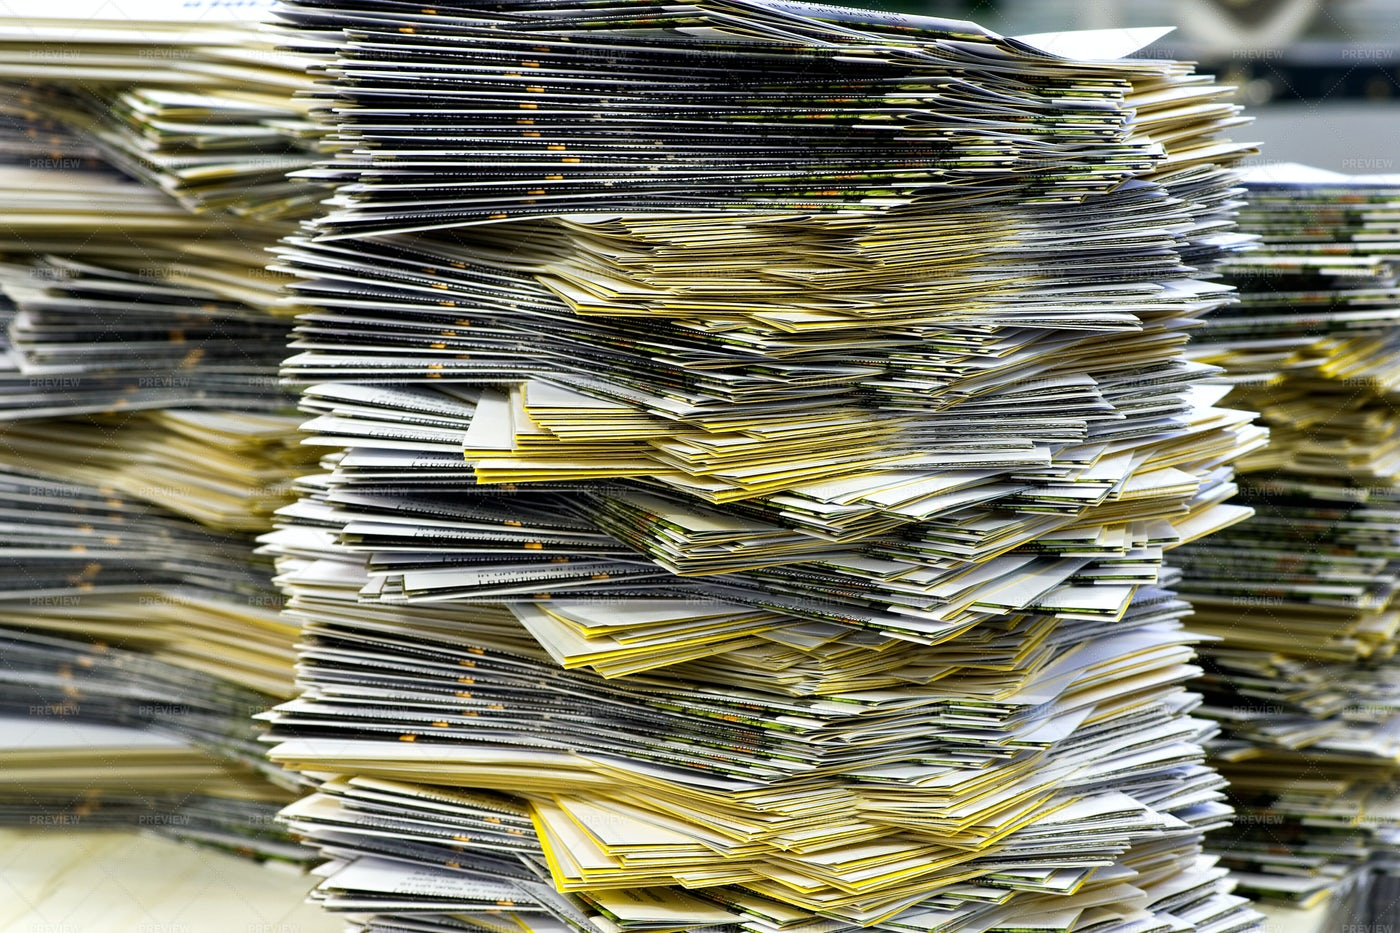 Piles Of Mailing Sheets: Stock Photos